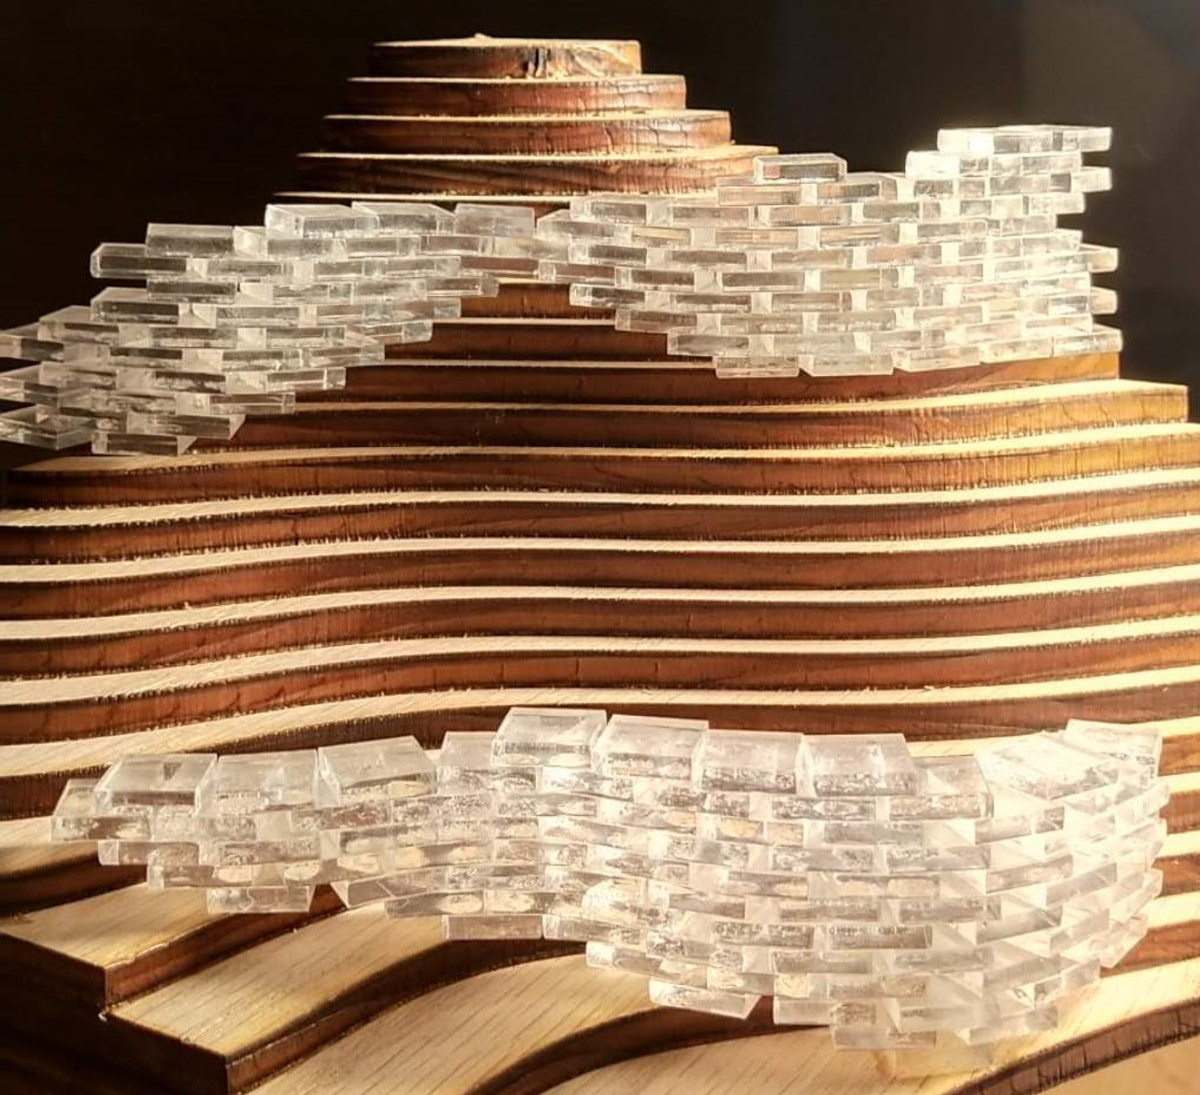 Model of serpentine housing bars made up of stacked units along the contours of Camelback Mountain by student Donglei Cao